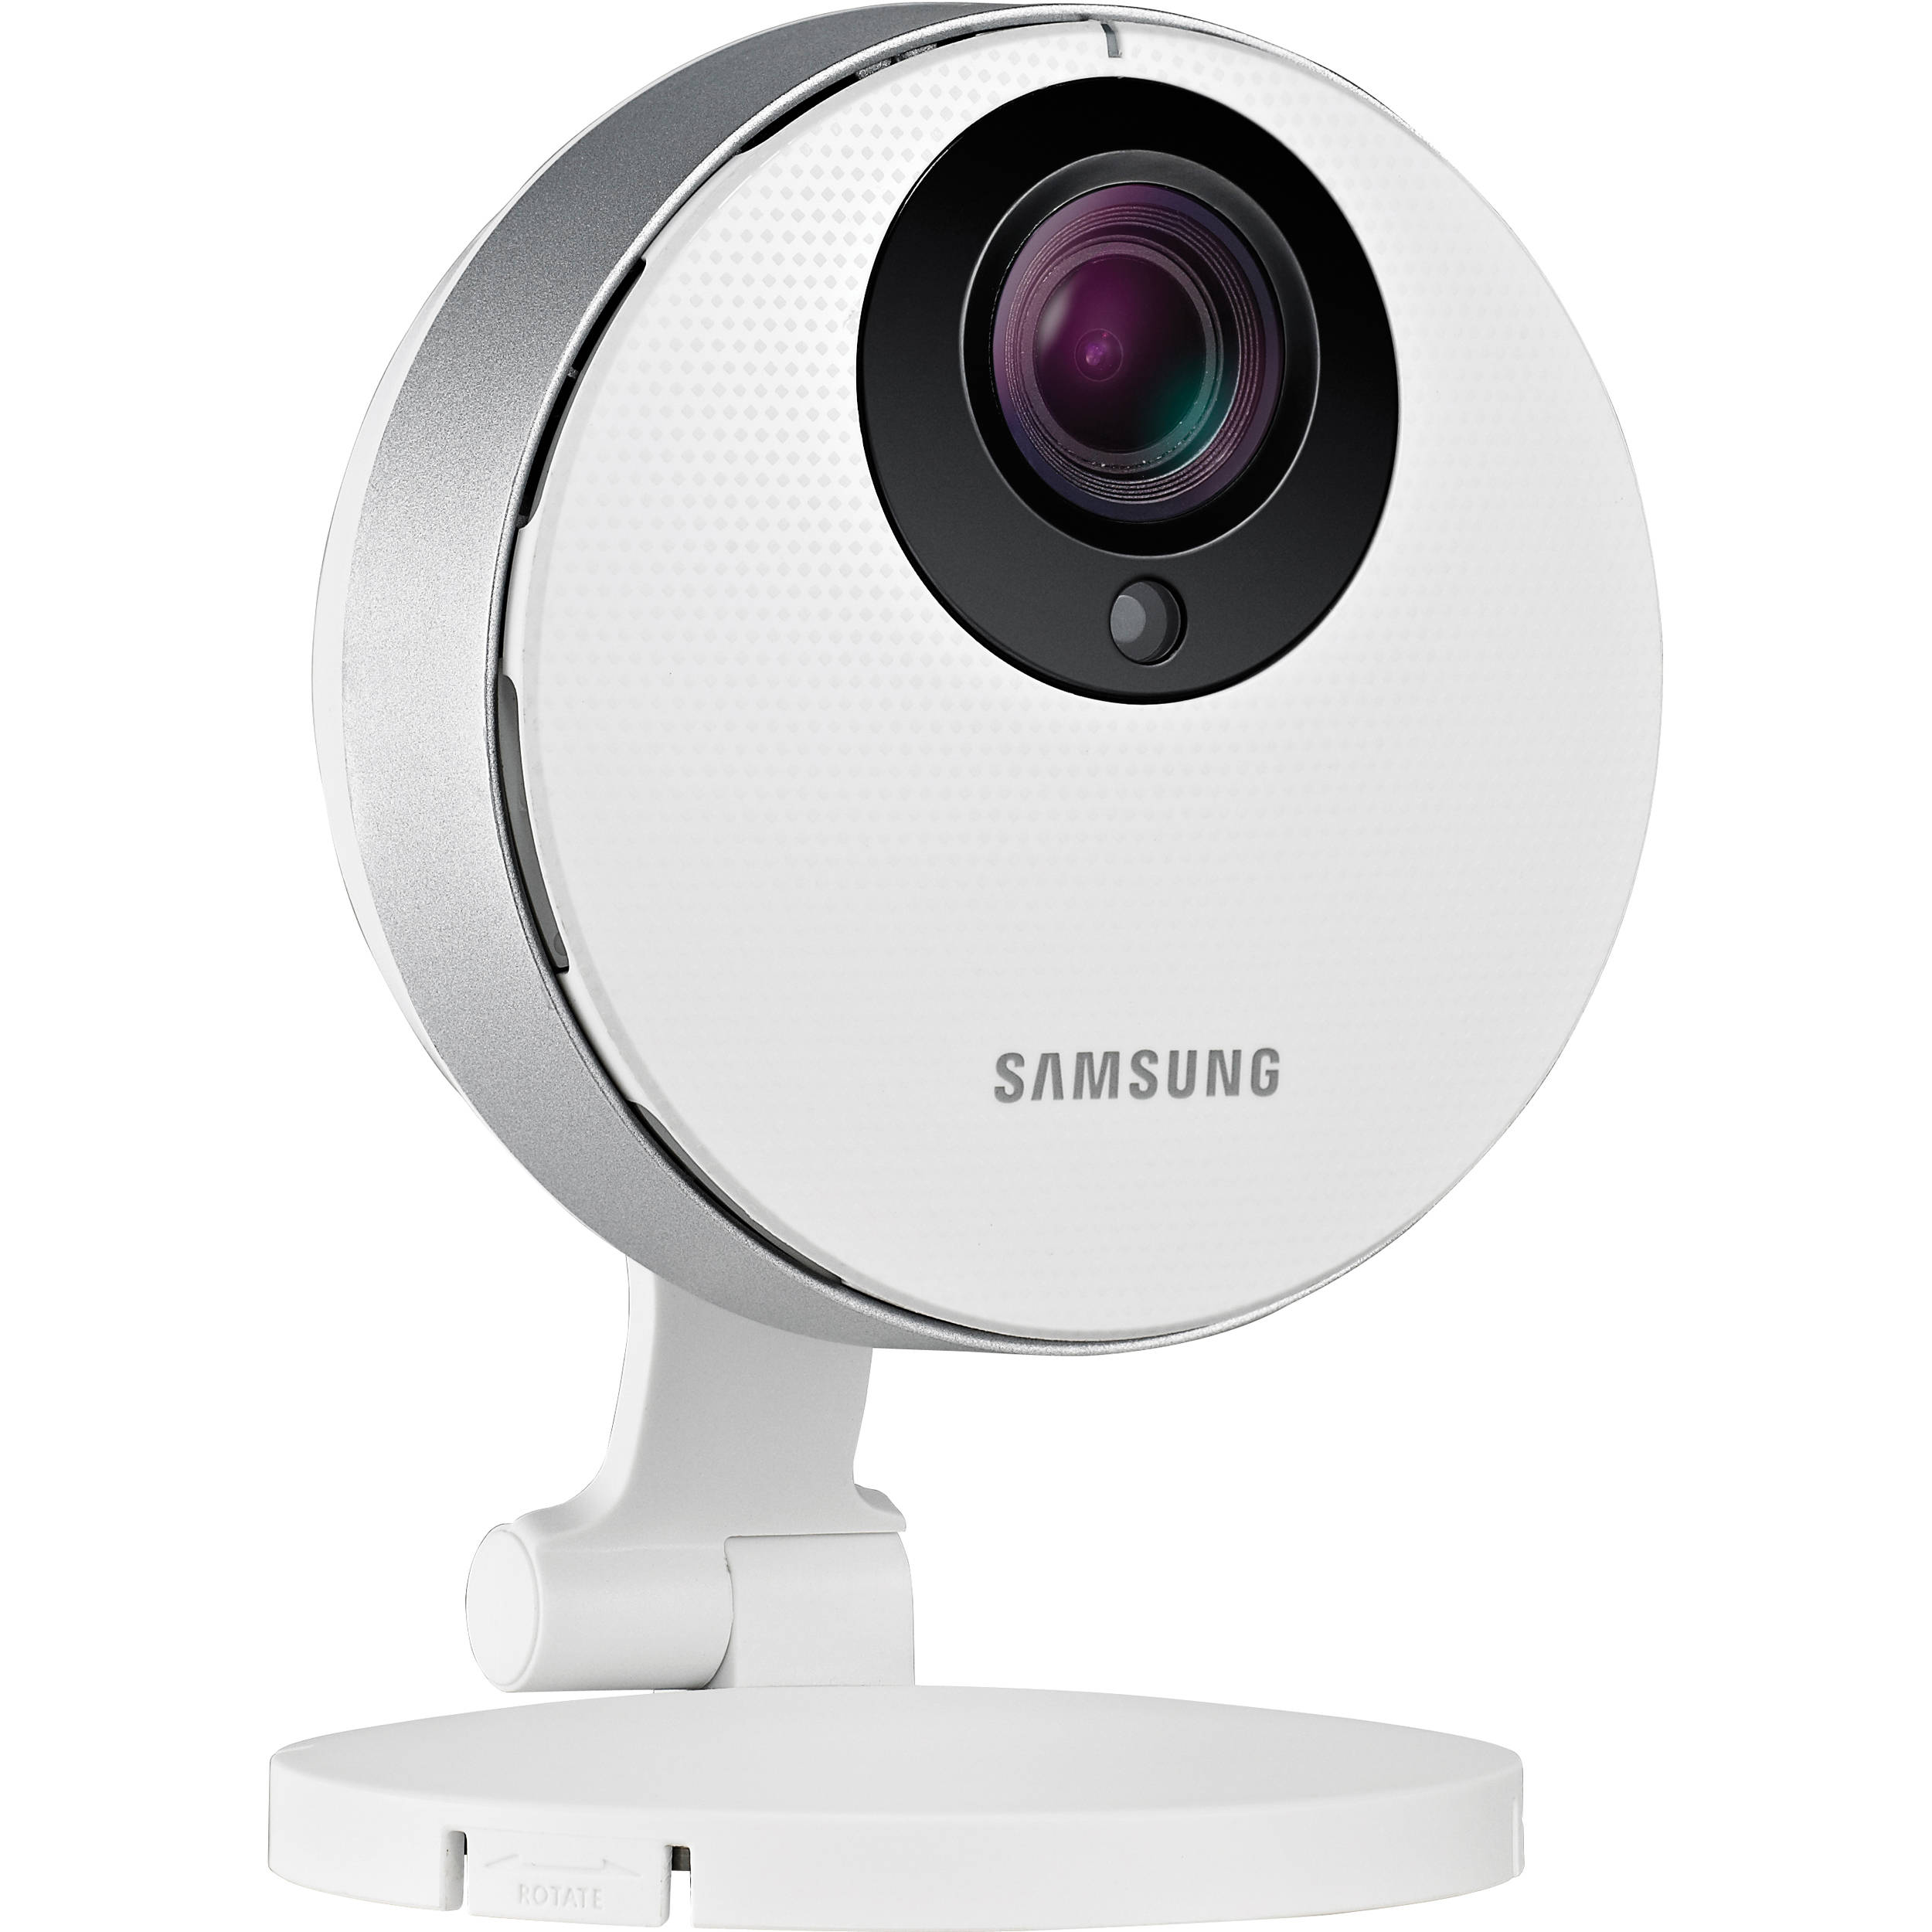 Image result for Samsung,IP,cameras,in,Dubai